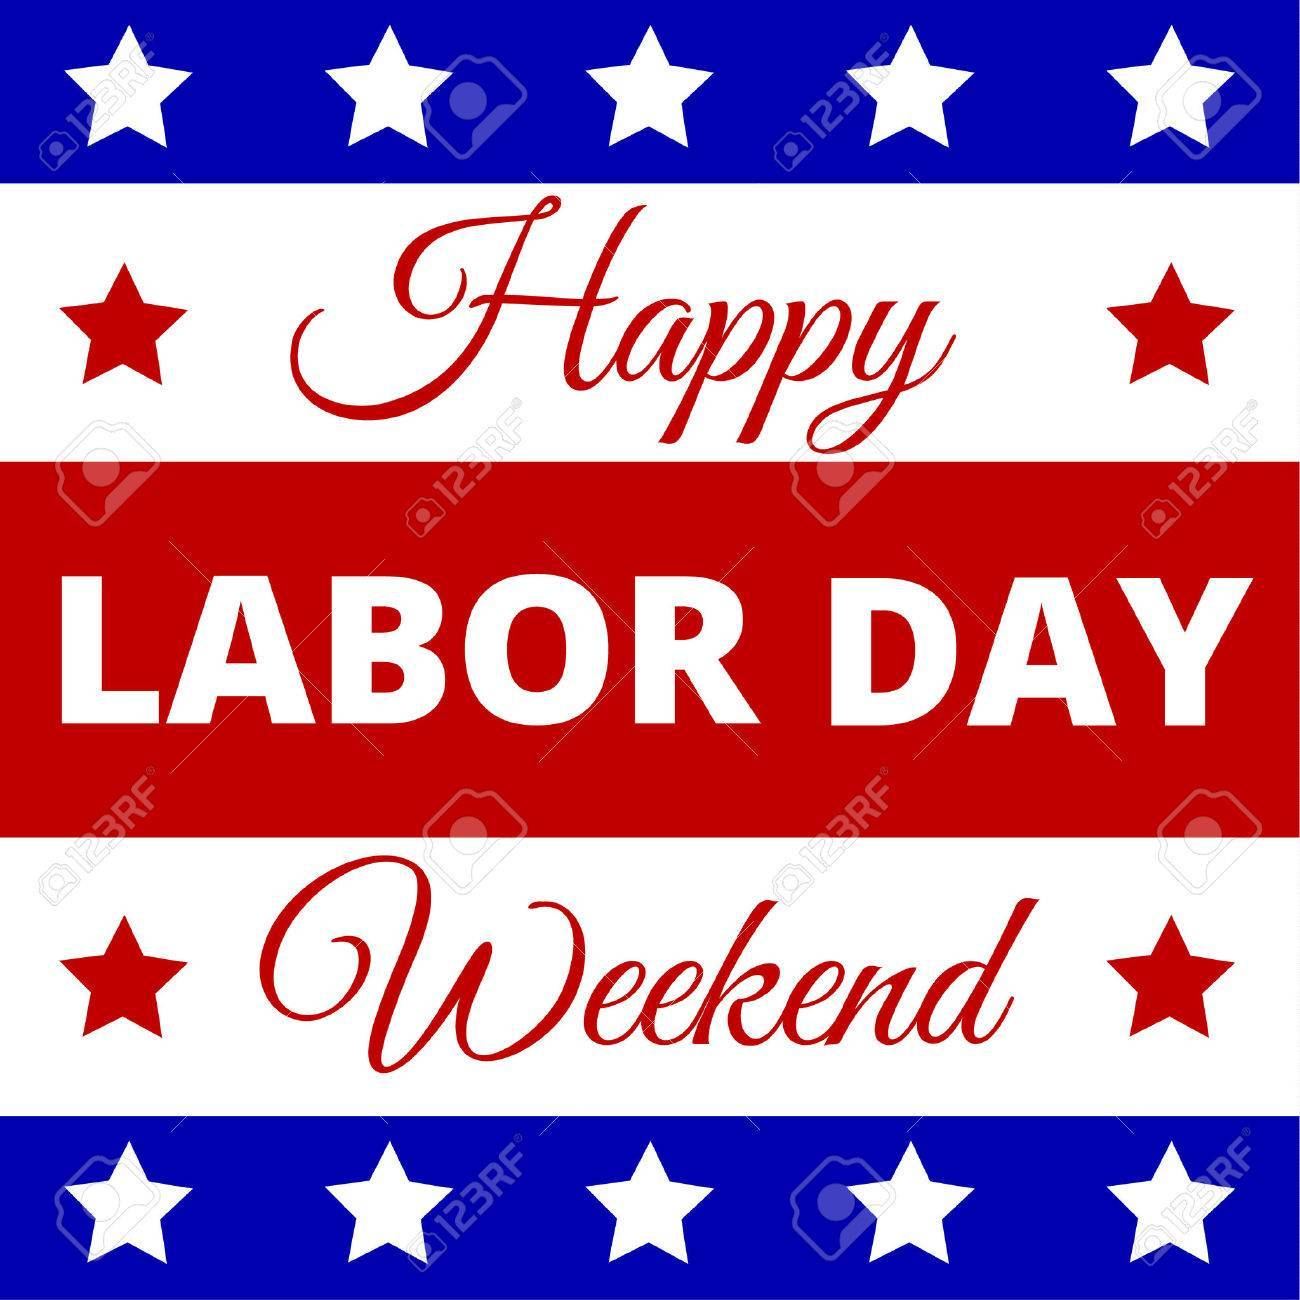 Labor day weekend clipart 7 » Clipart Portal.